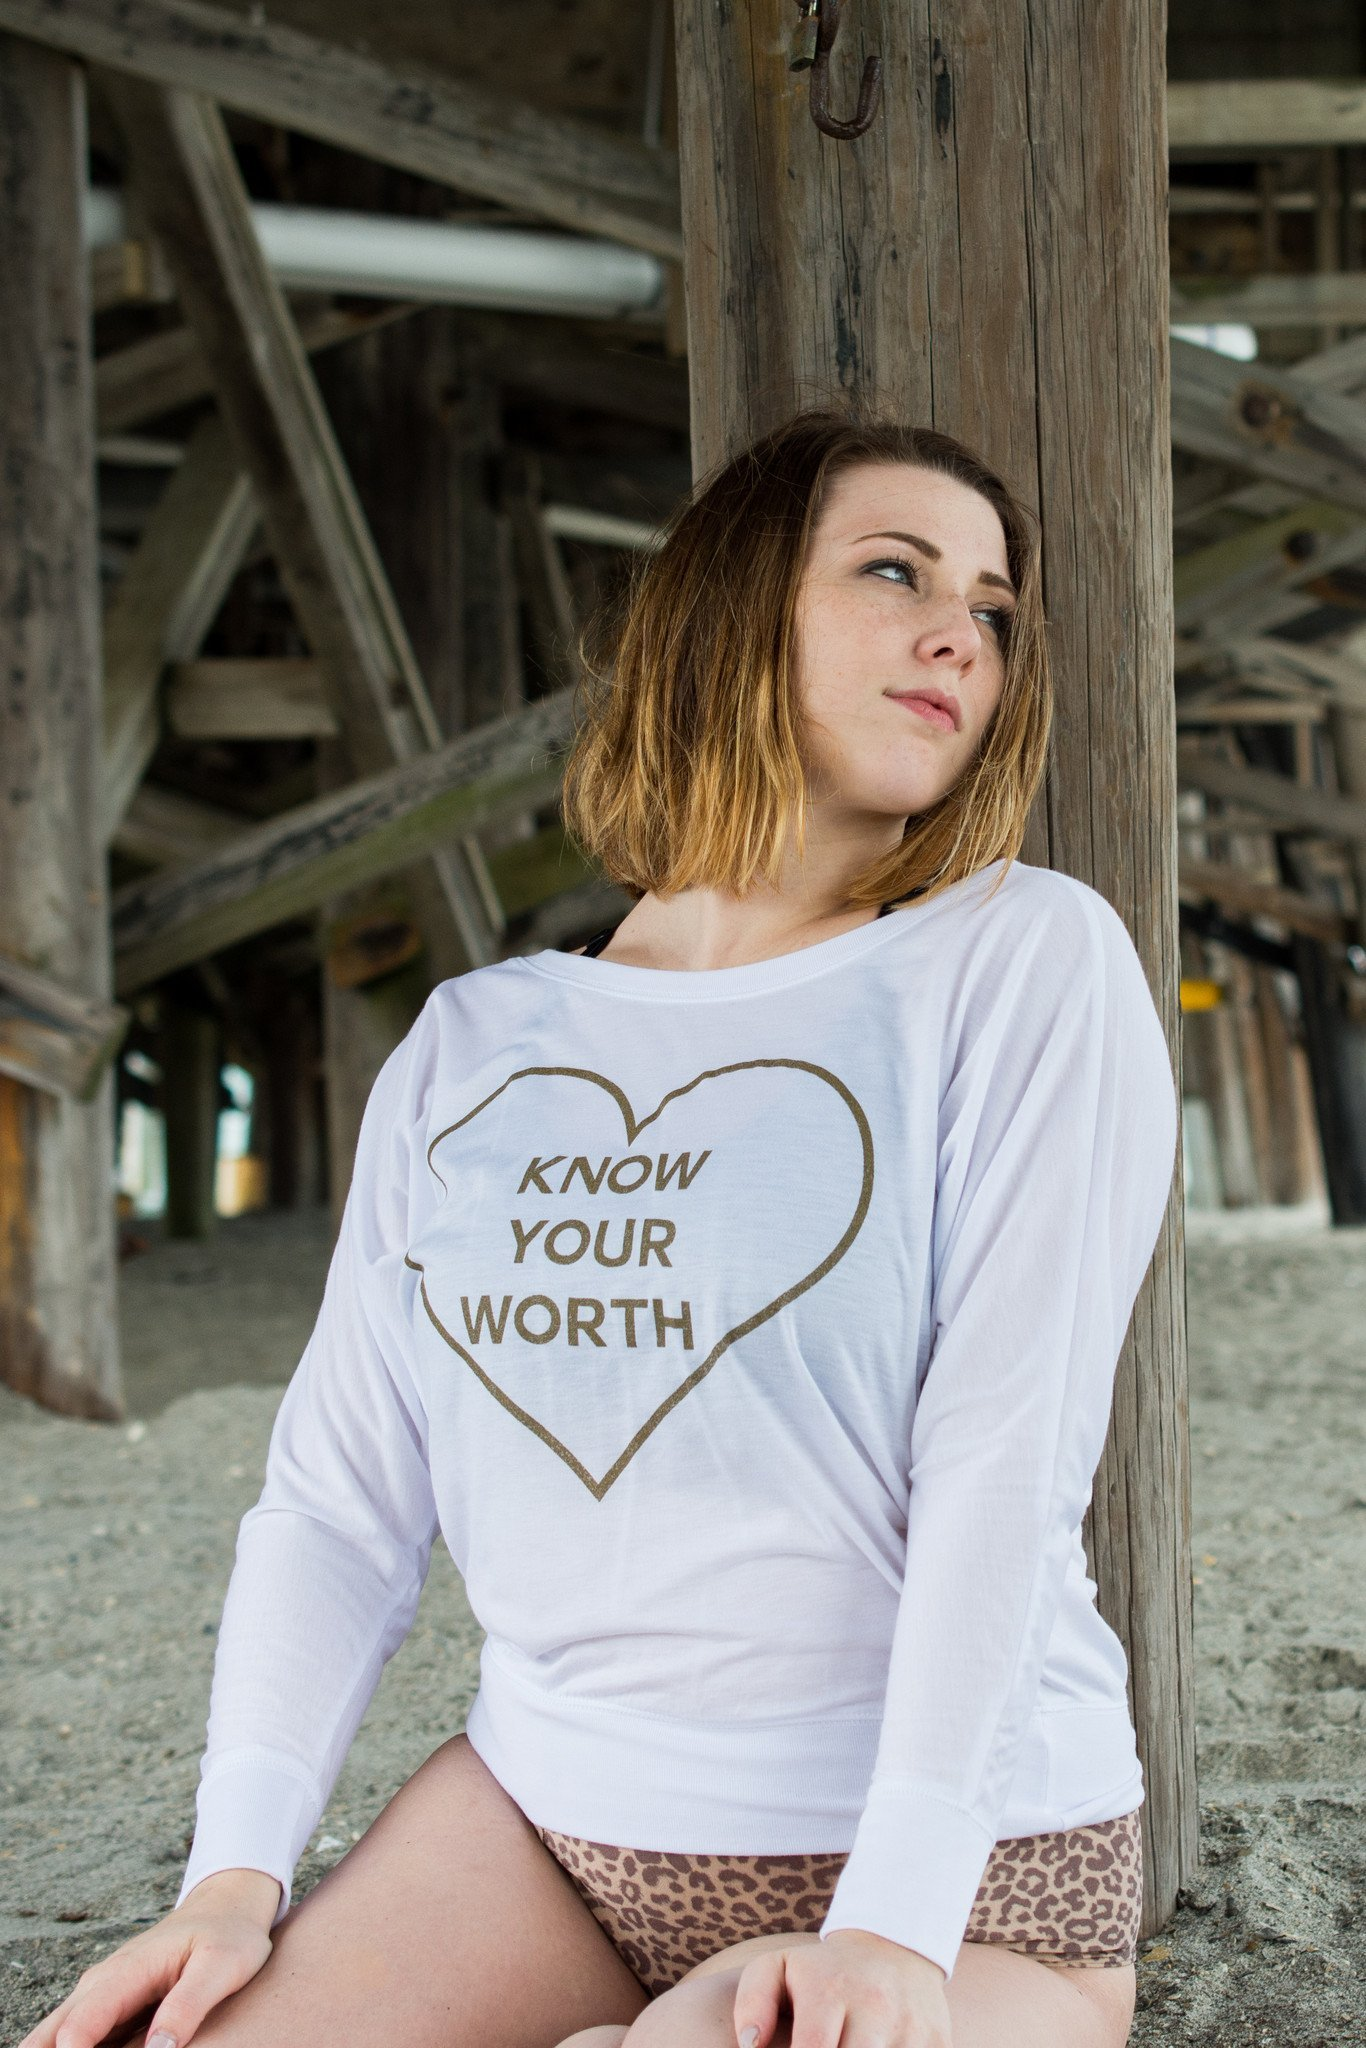 Know Your Worth White Long Sleeve Shirt